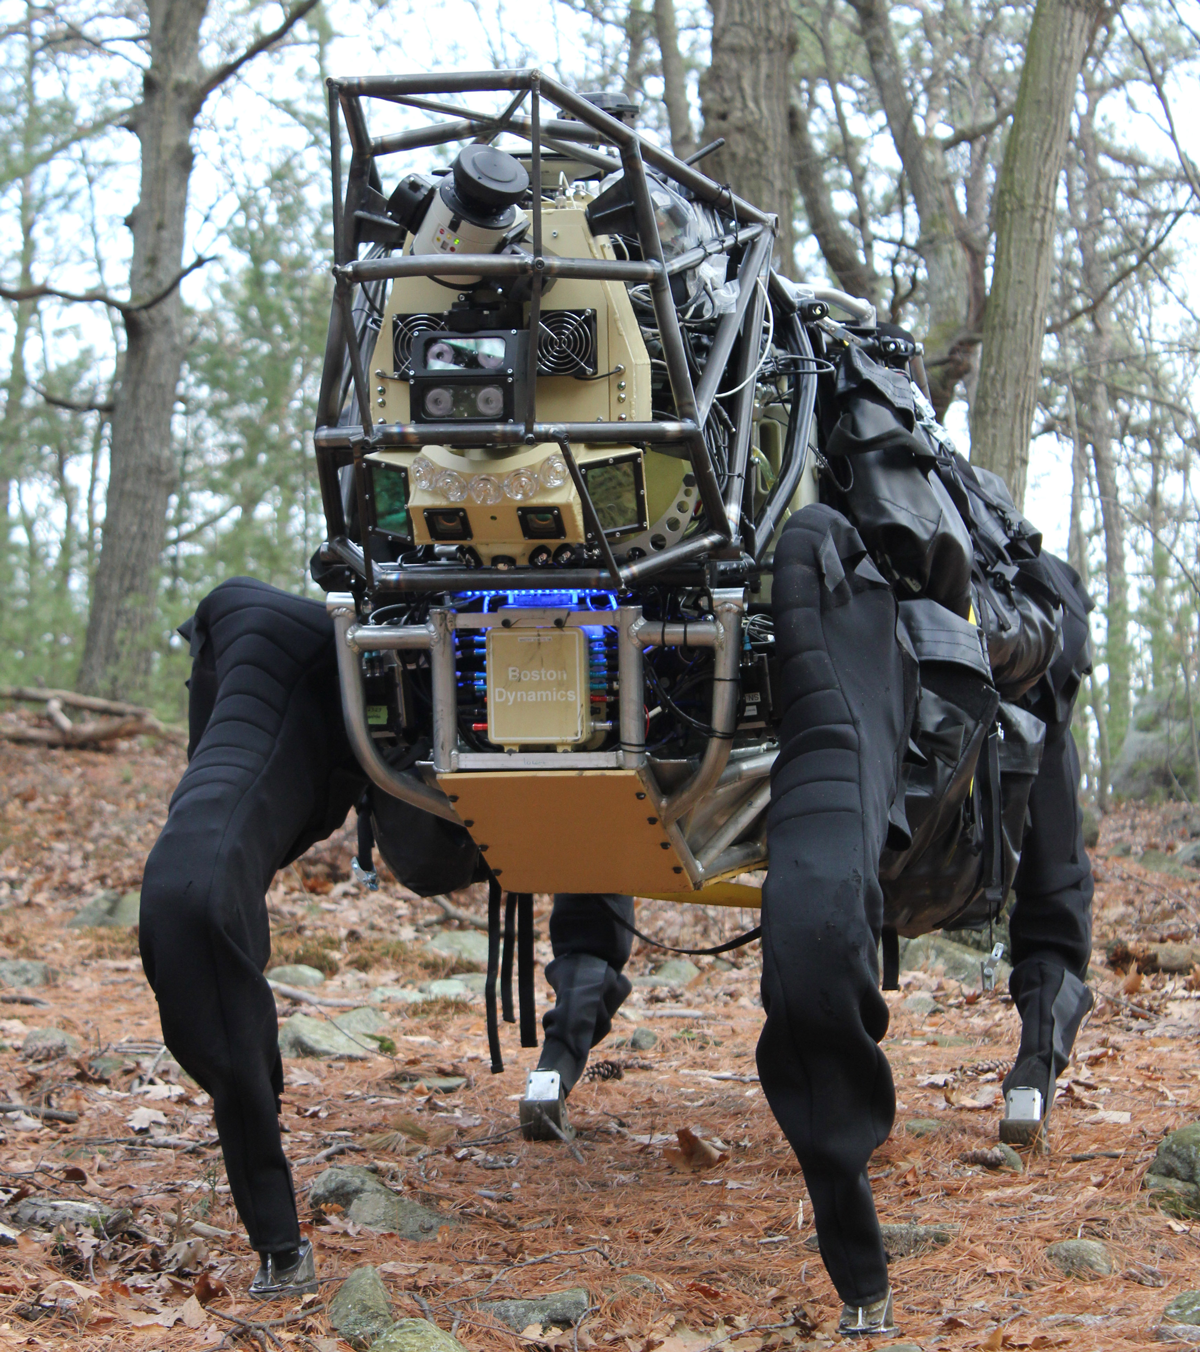 military vs military robotics Pros and cons for robotics in the military pros: some good things about having robots in the military are they are able to help soldiers some can improve on attacks.